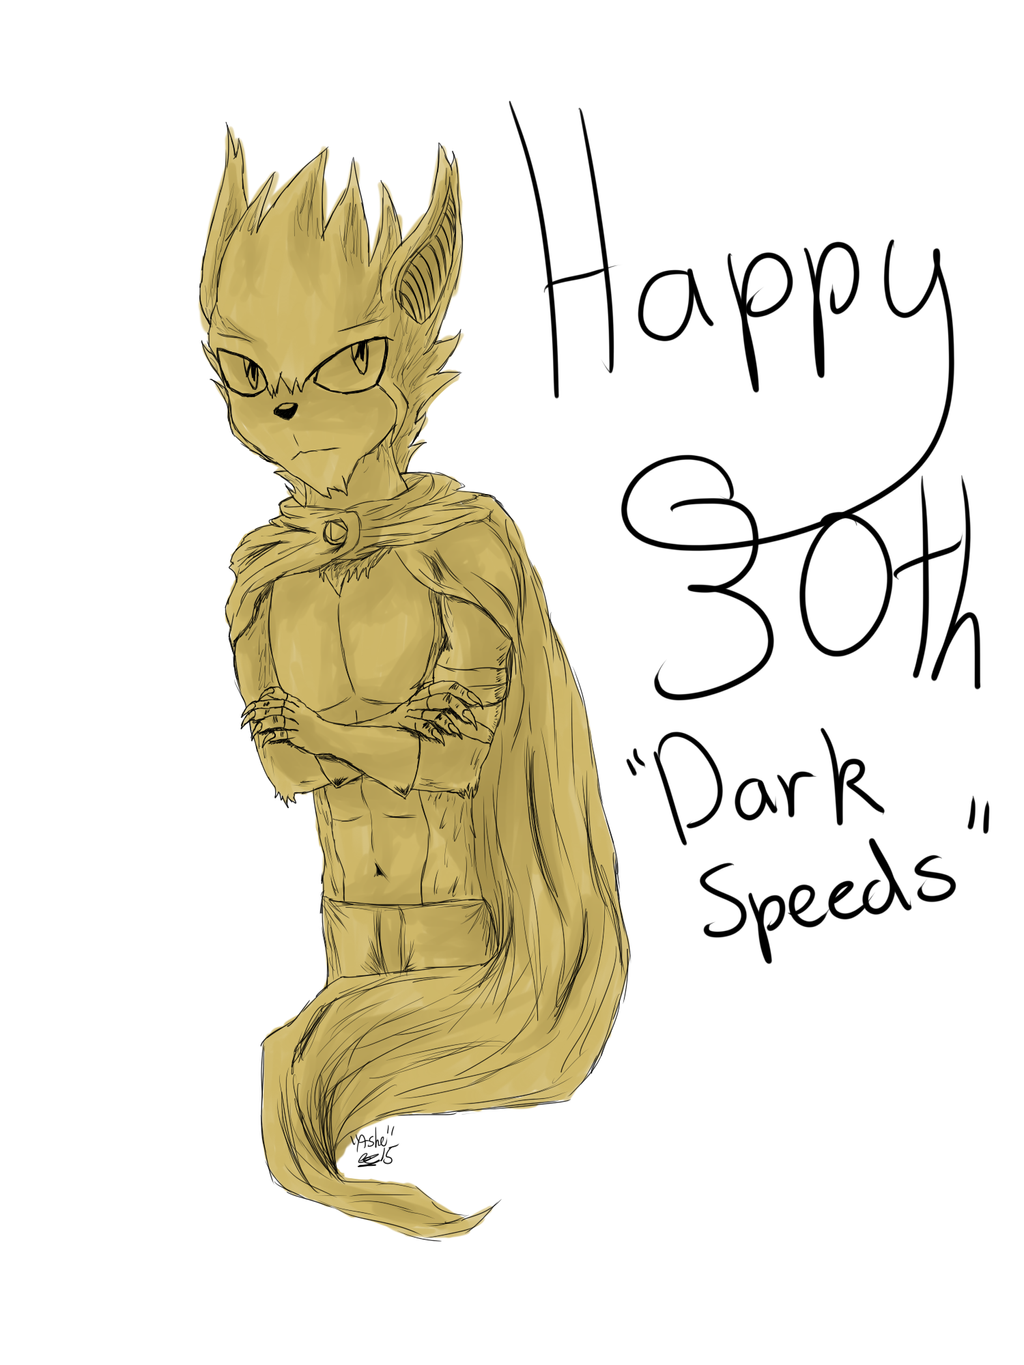 Ashworth- Darkspeeds Bday Gift by ashe-the-hedgehog